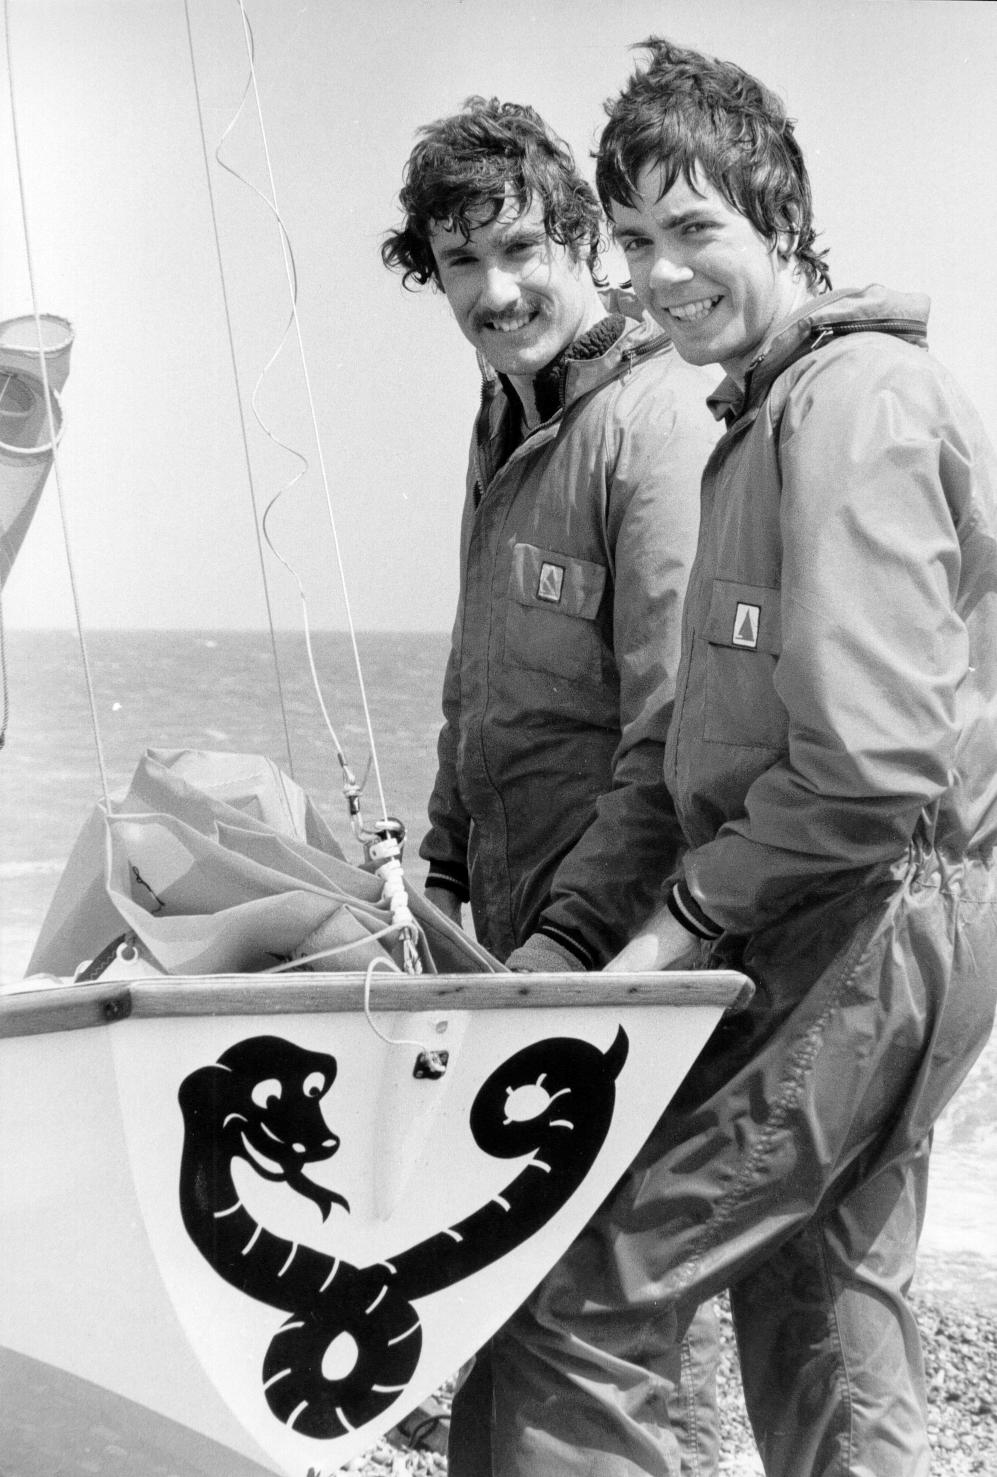 Two teenagers standing next to their Mirror dinghy which has a sidewinder snake painted on the bow transom